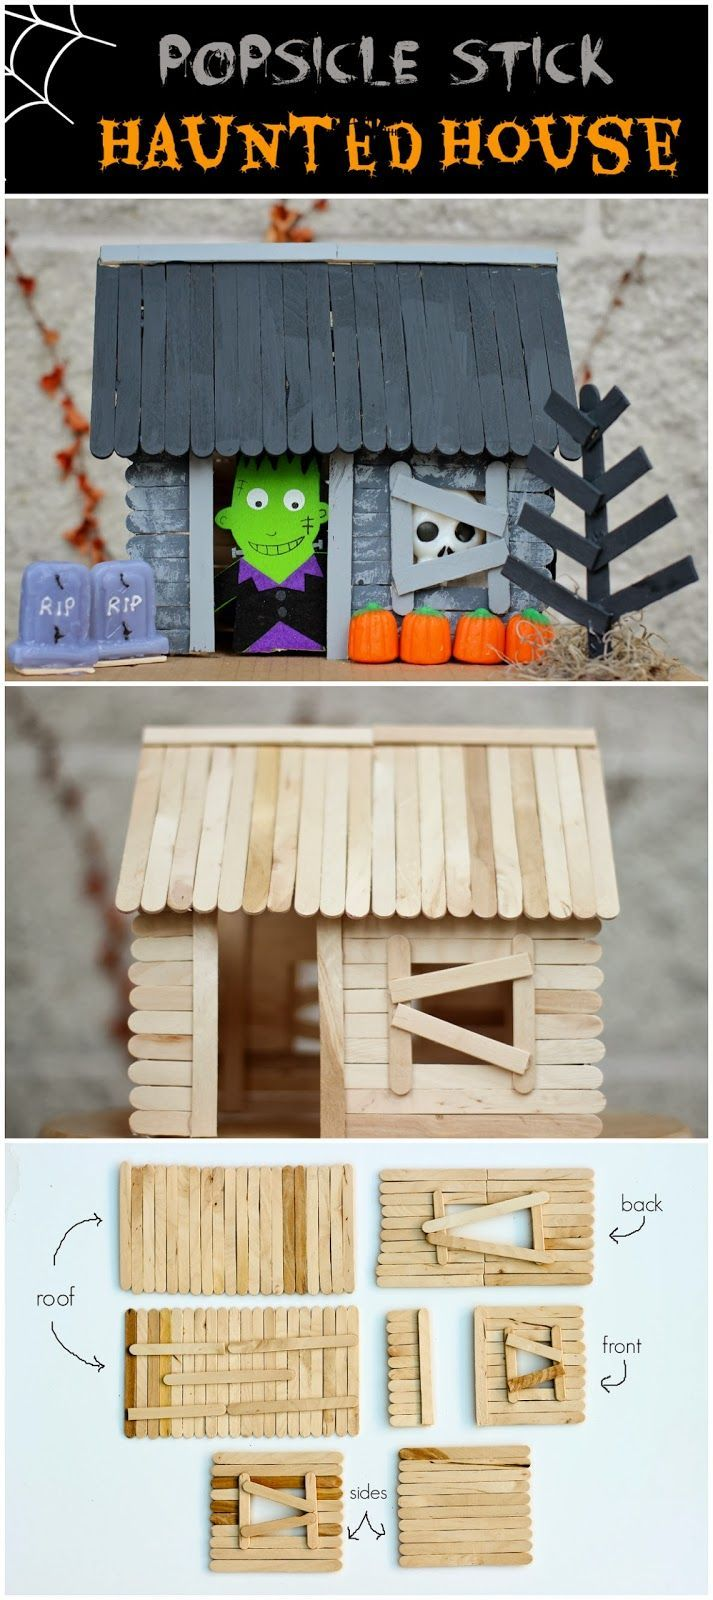 Round wooden sticks for crafts - How To Make A Popsicle Stick Haunted House Via Hannah Mestel Mestel Mestel Mestel